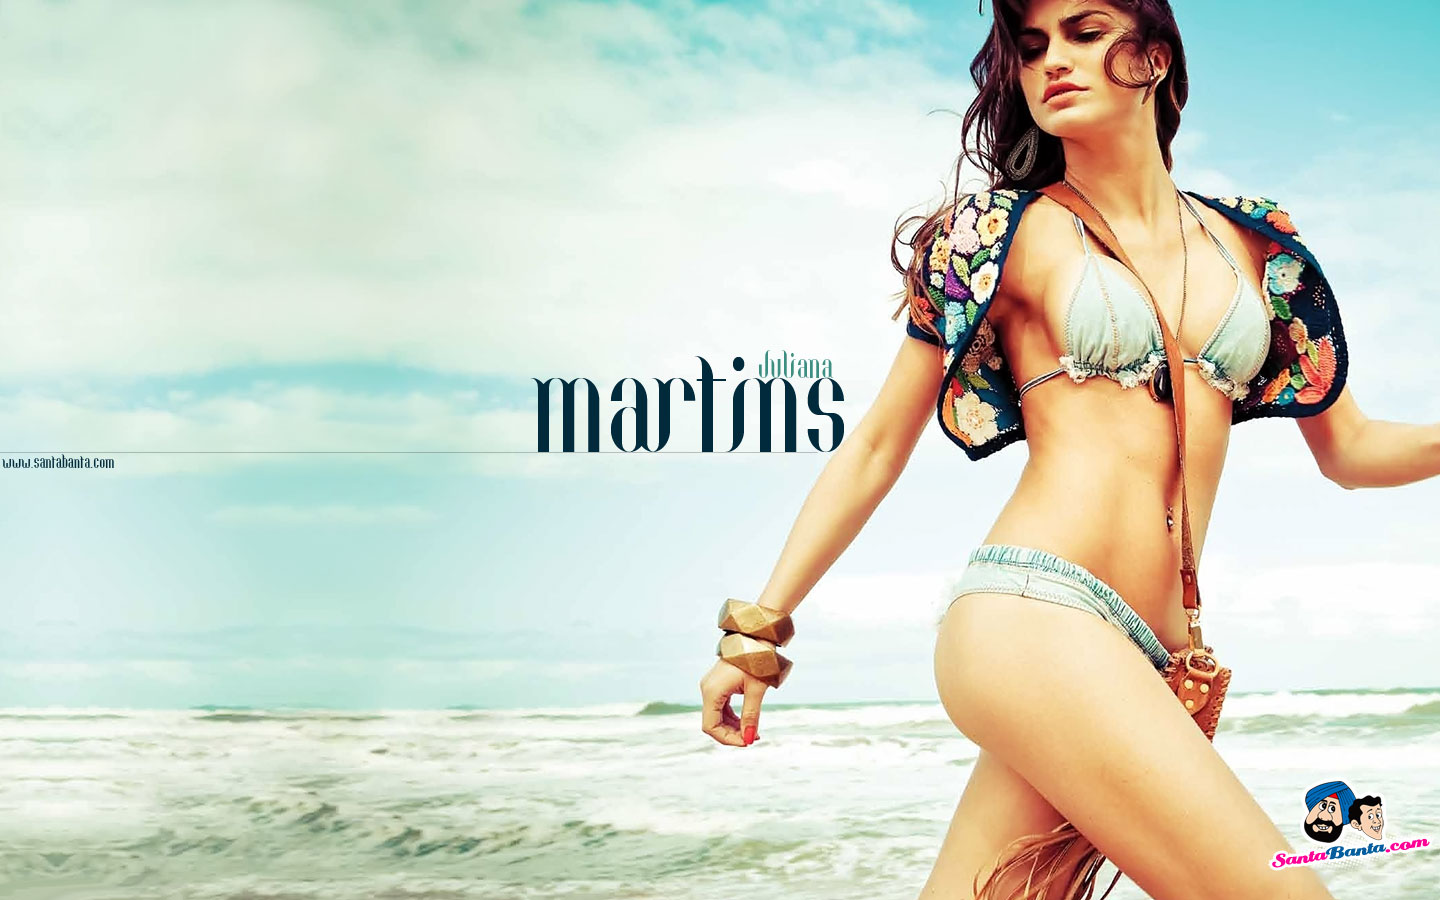 juliana martins 12vjoanna krupa juliana martins lingerie lucy pinder nude sexy topless sexy ass boobs nude body high quality wallpapers nude boobs big boobs butts arabic nude wallpapers girls babes  day07   engine porn